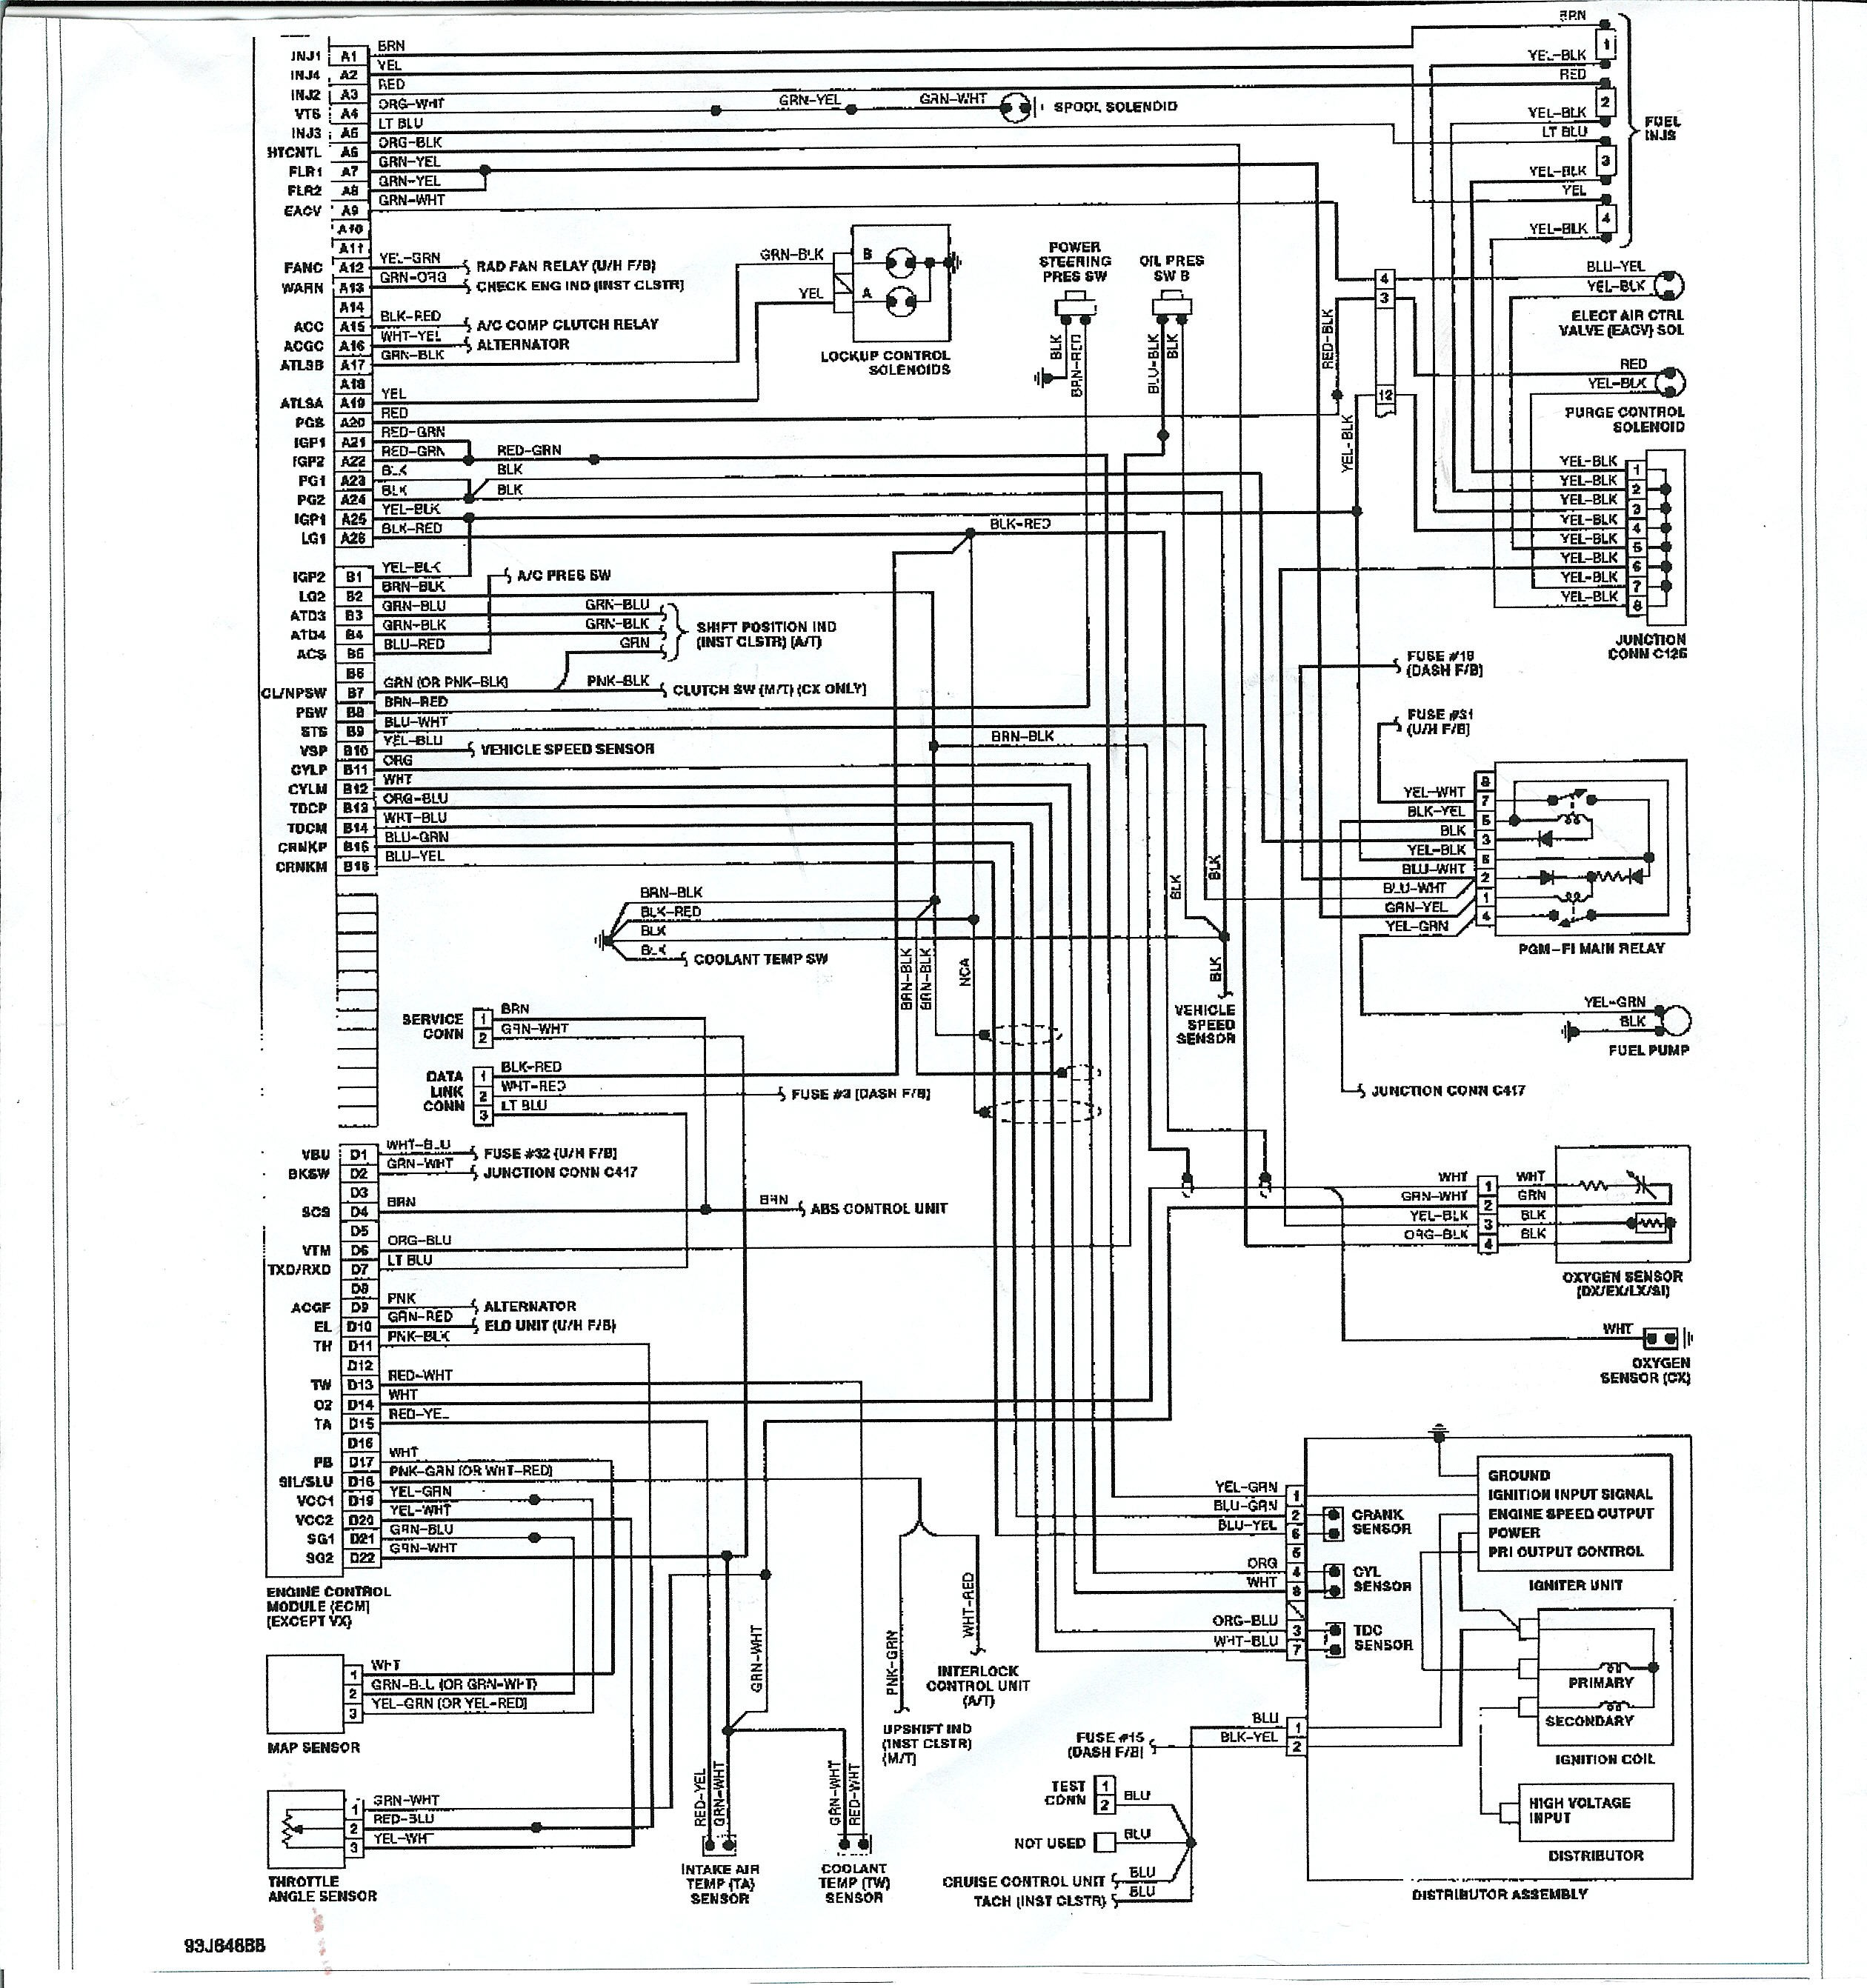 1997 Honda Accord Engine Diagram Vw Transporter Wiring Diagram 95 Honda Civic Transmission Diagram Of 1997 Honda Accord Engine Diagram